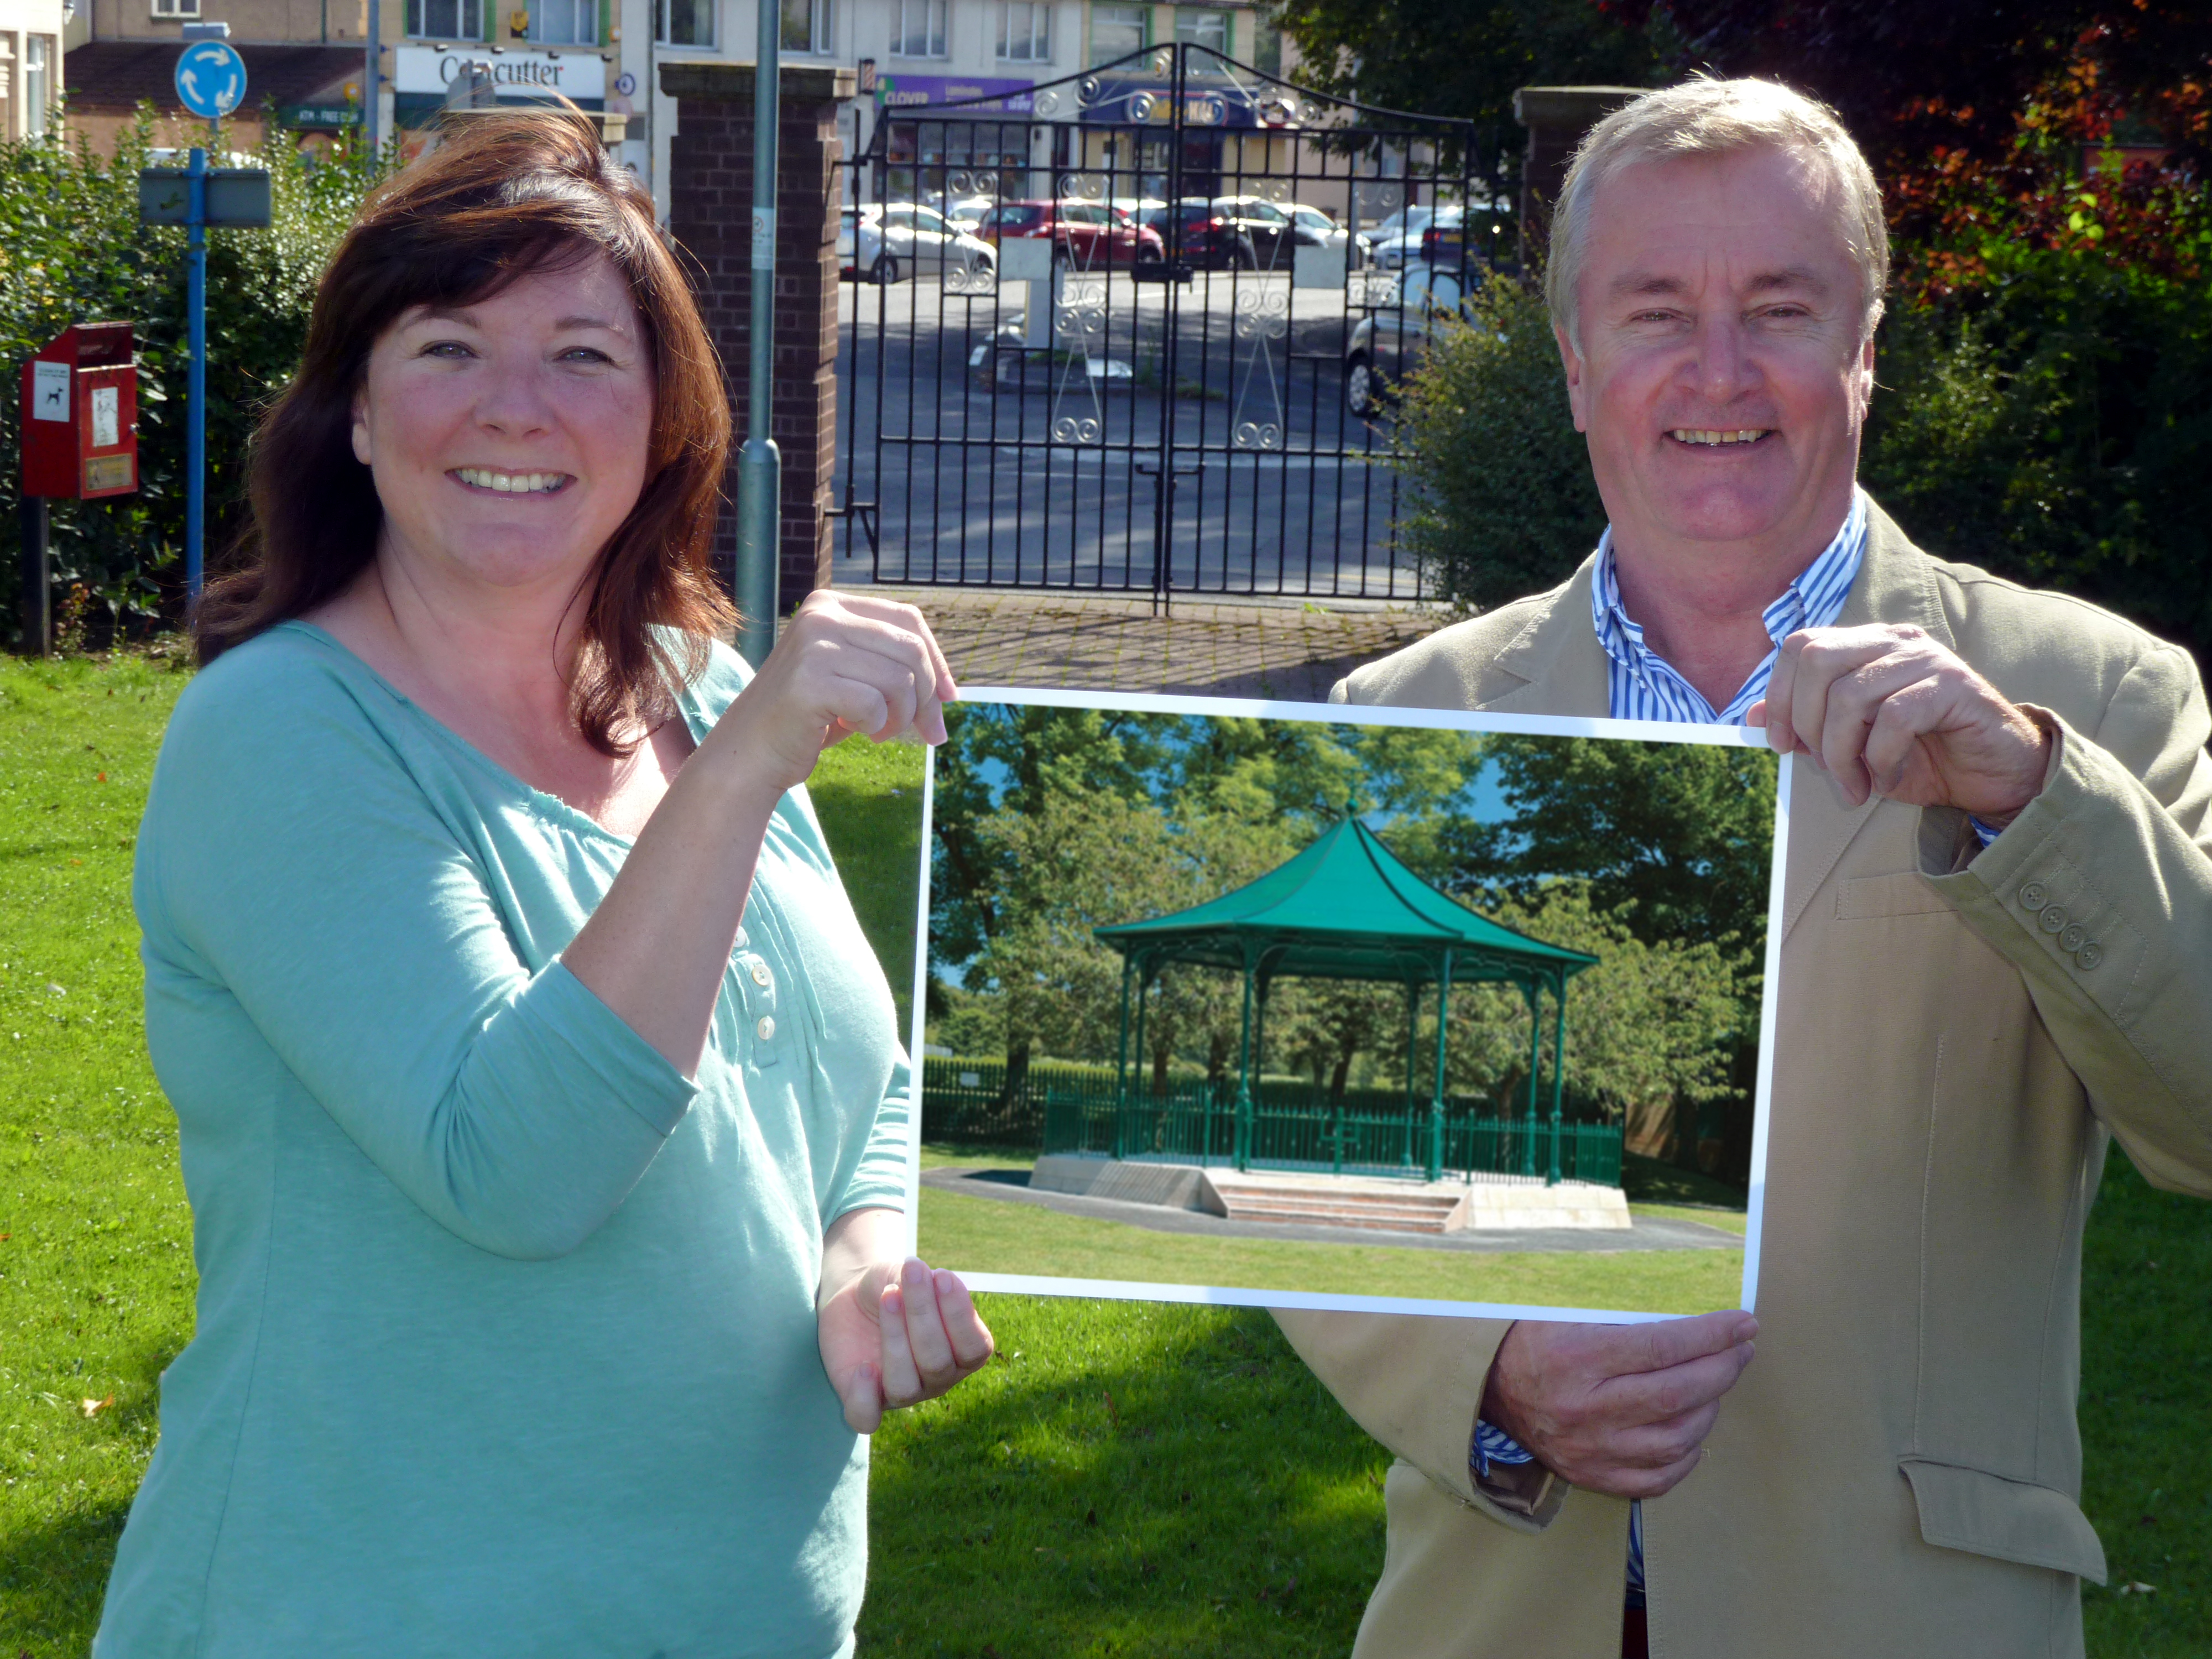 Maghull Town Council Labour leader Cllr Patrick McKinley and Maghull Town Council clerk Angela McIntyre with a photo of what the new bandstand could look like.